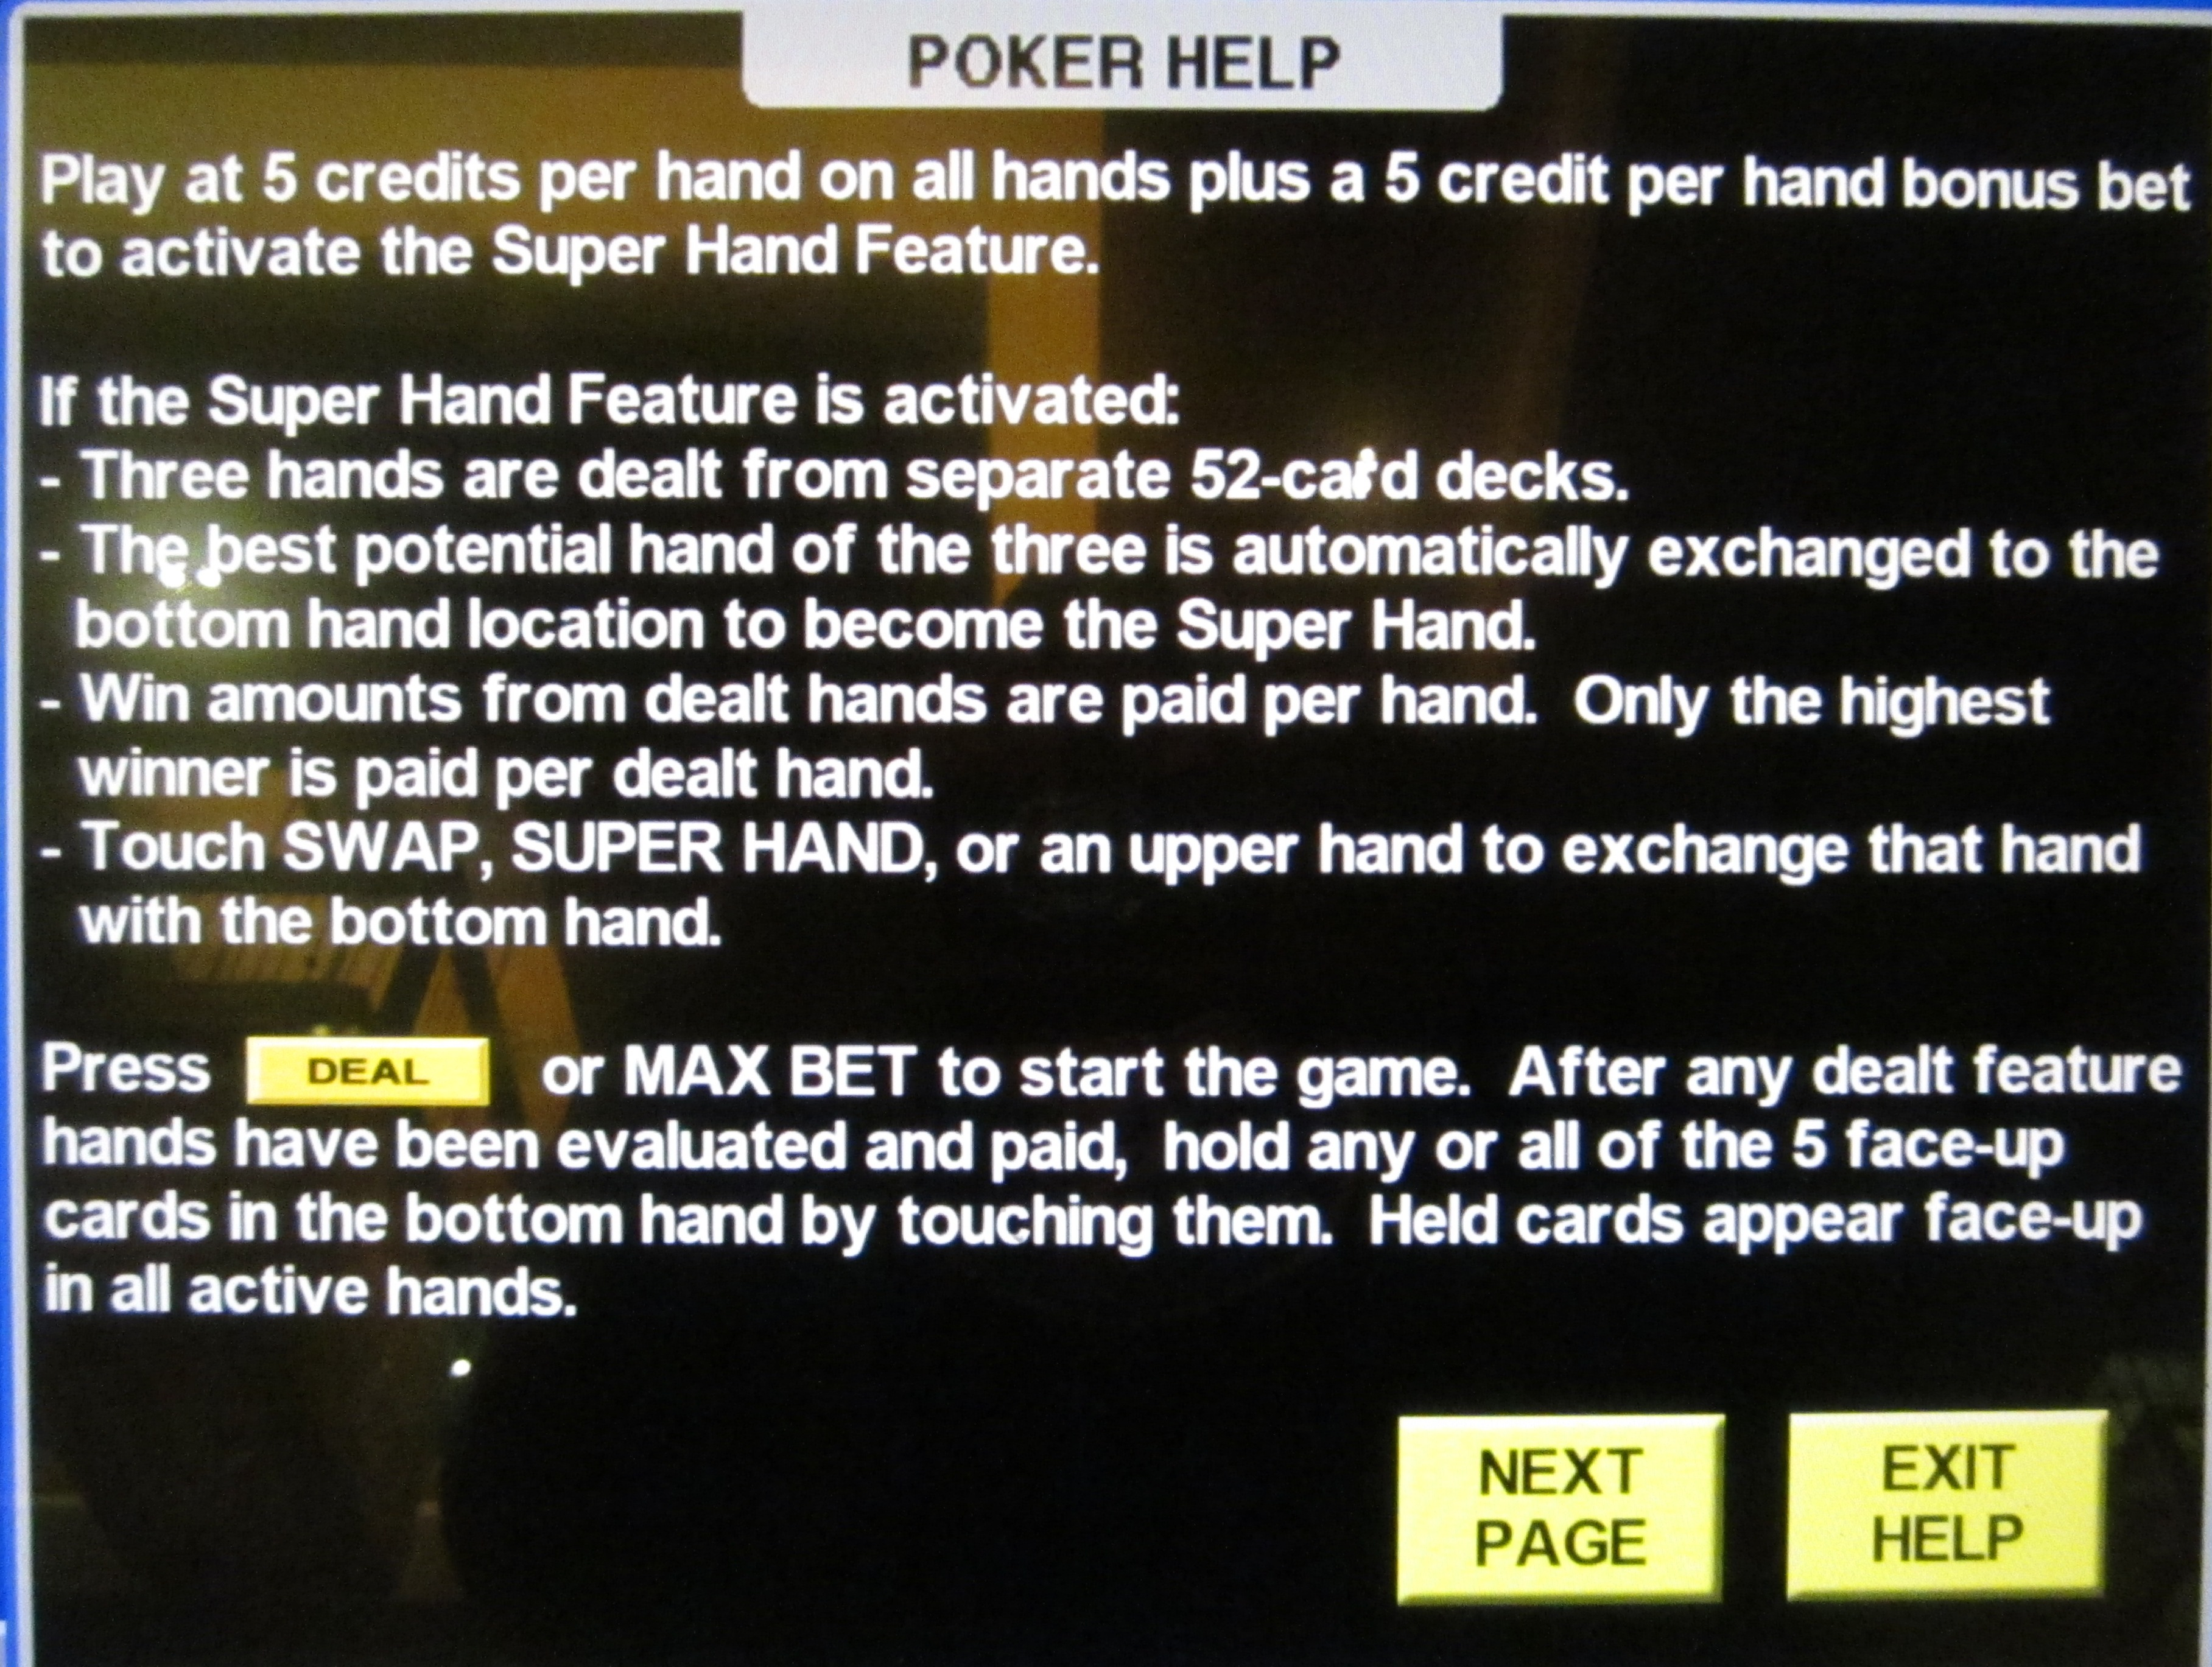 what is the probability of getting a flush on the initial deal in poker